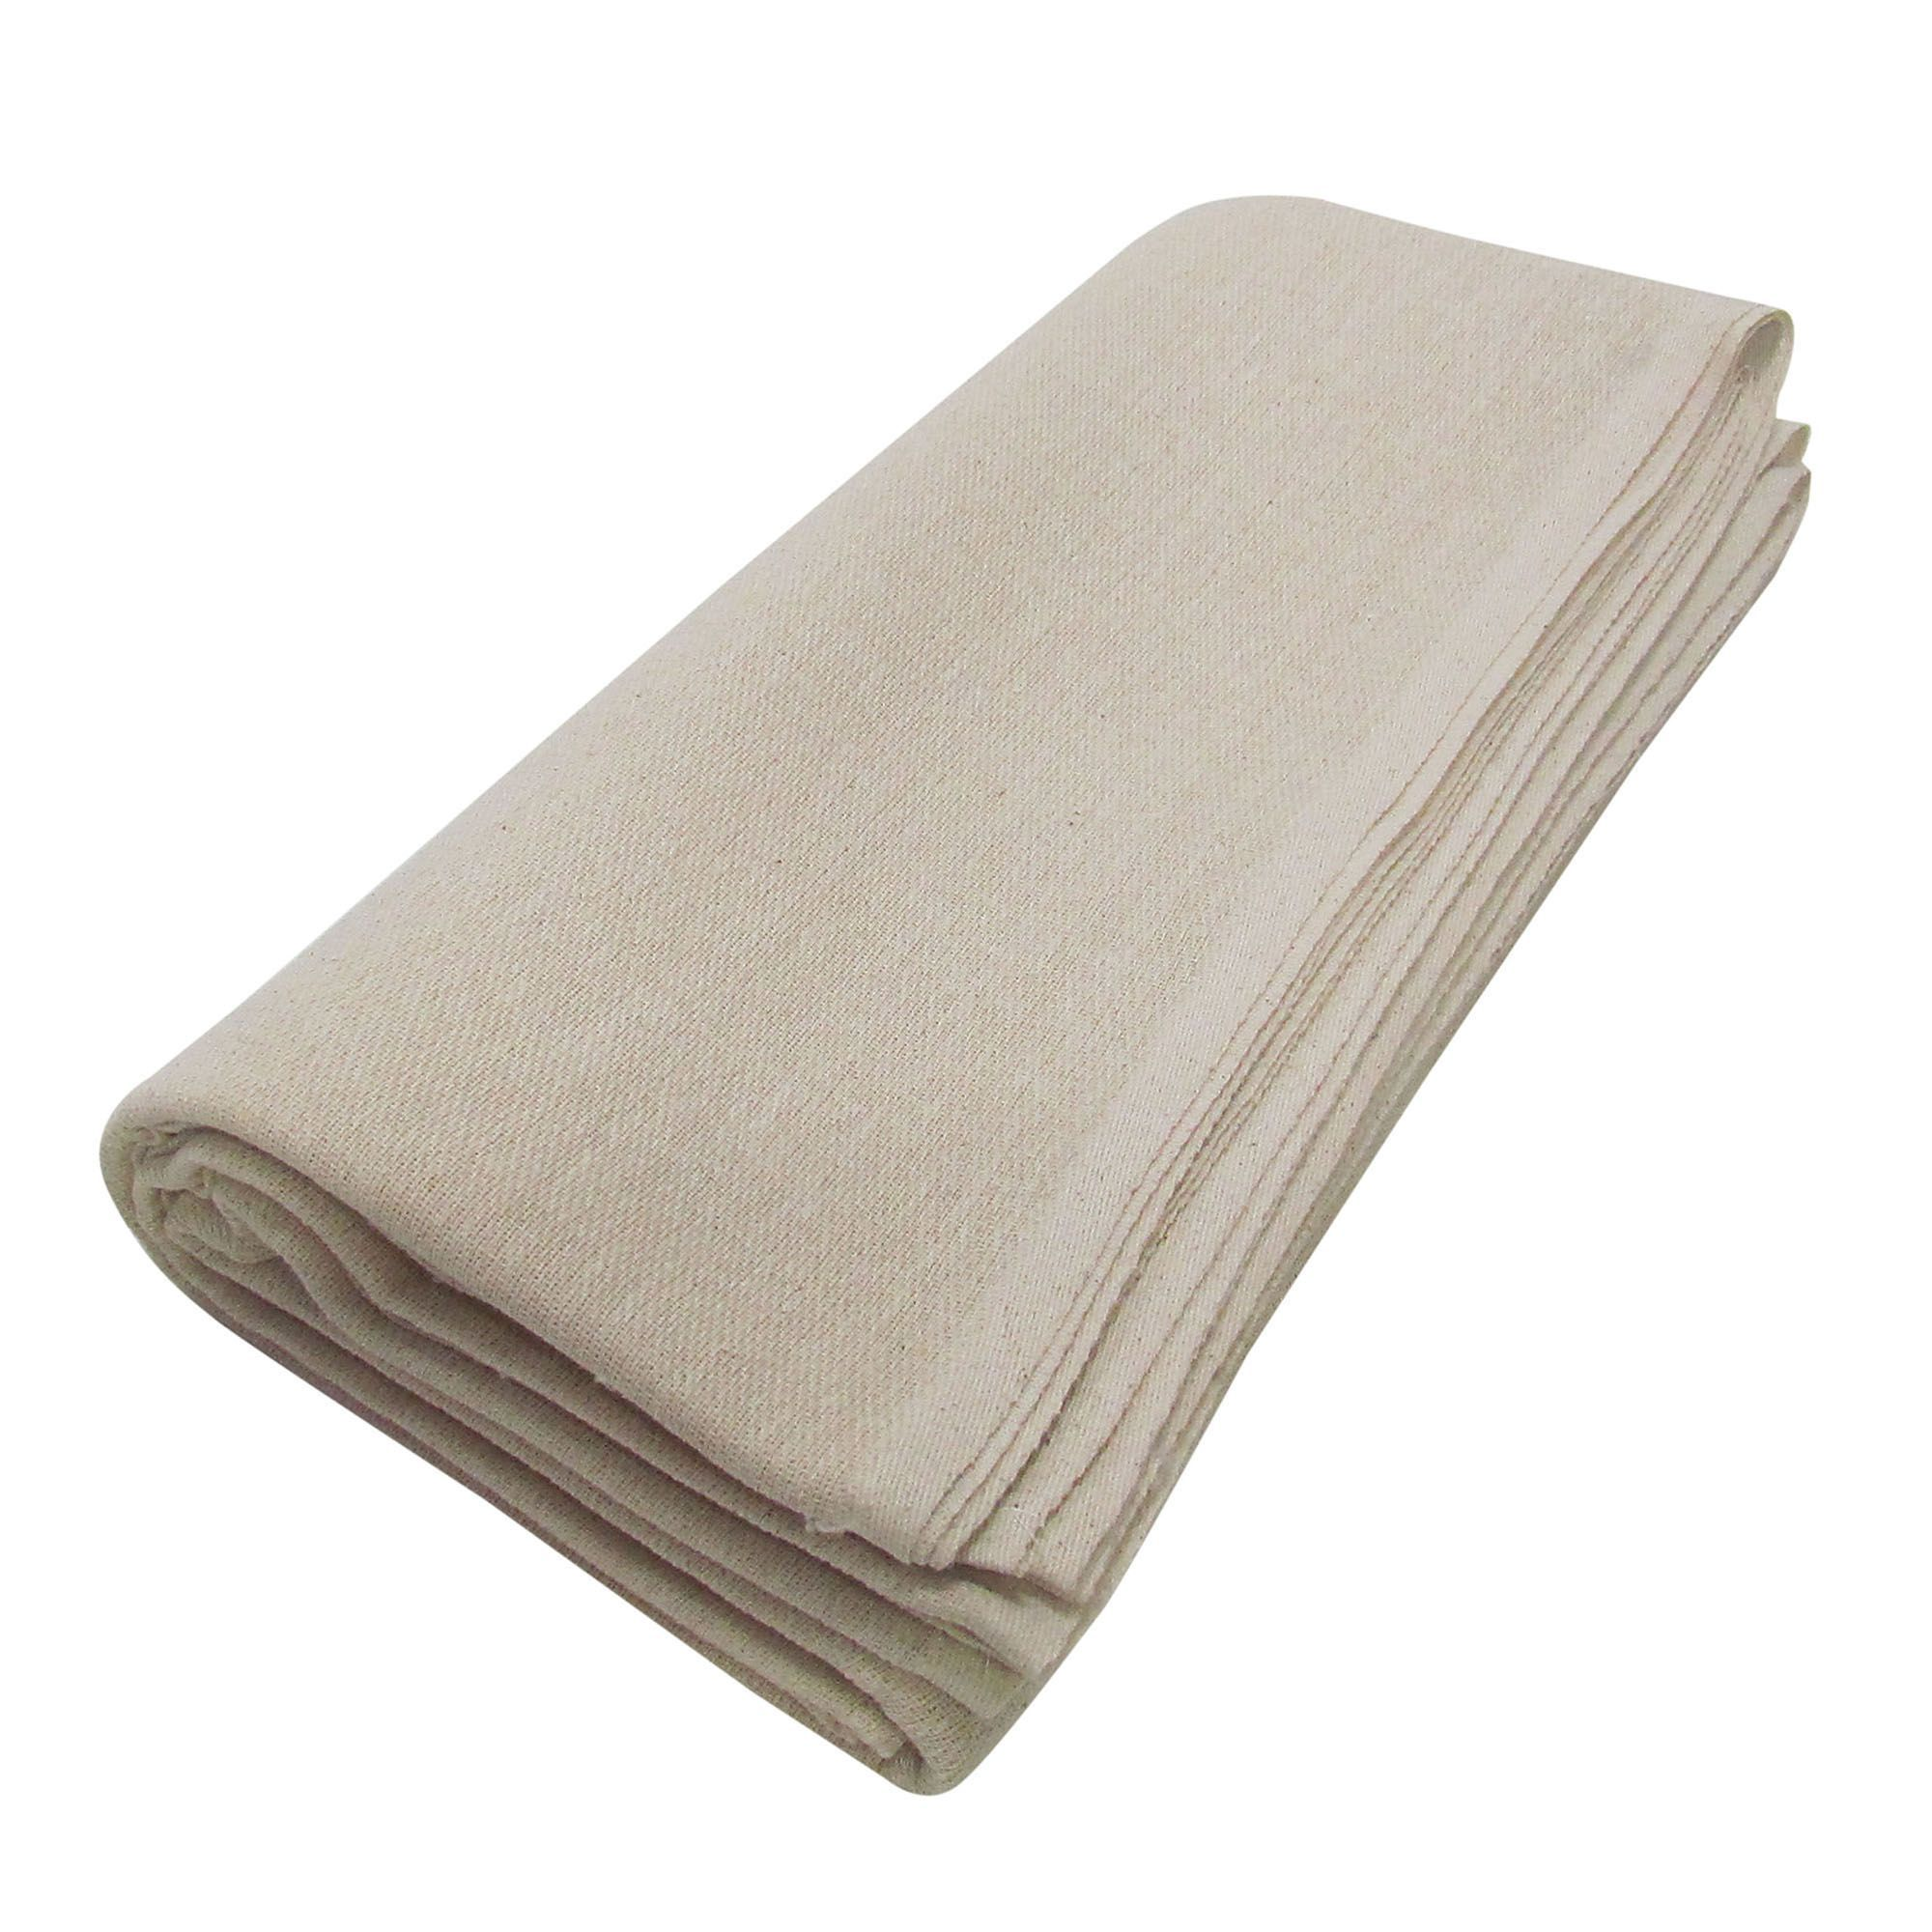 Diall Cotton Staircase Dust Sheet (l)7.31m (w) 0.91 M